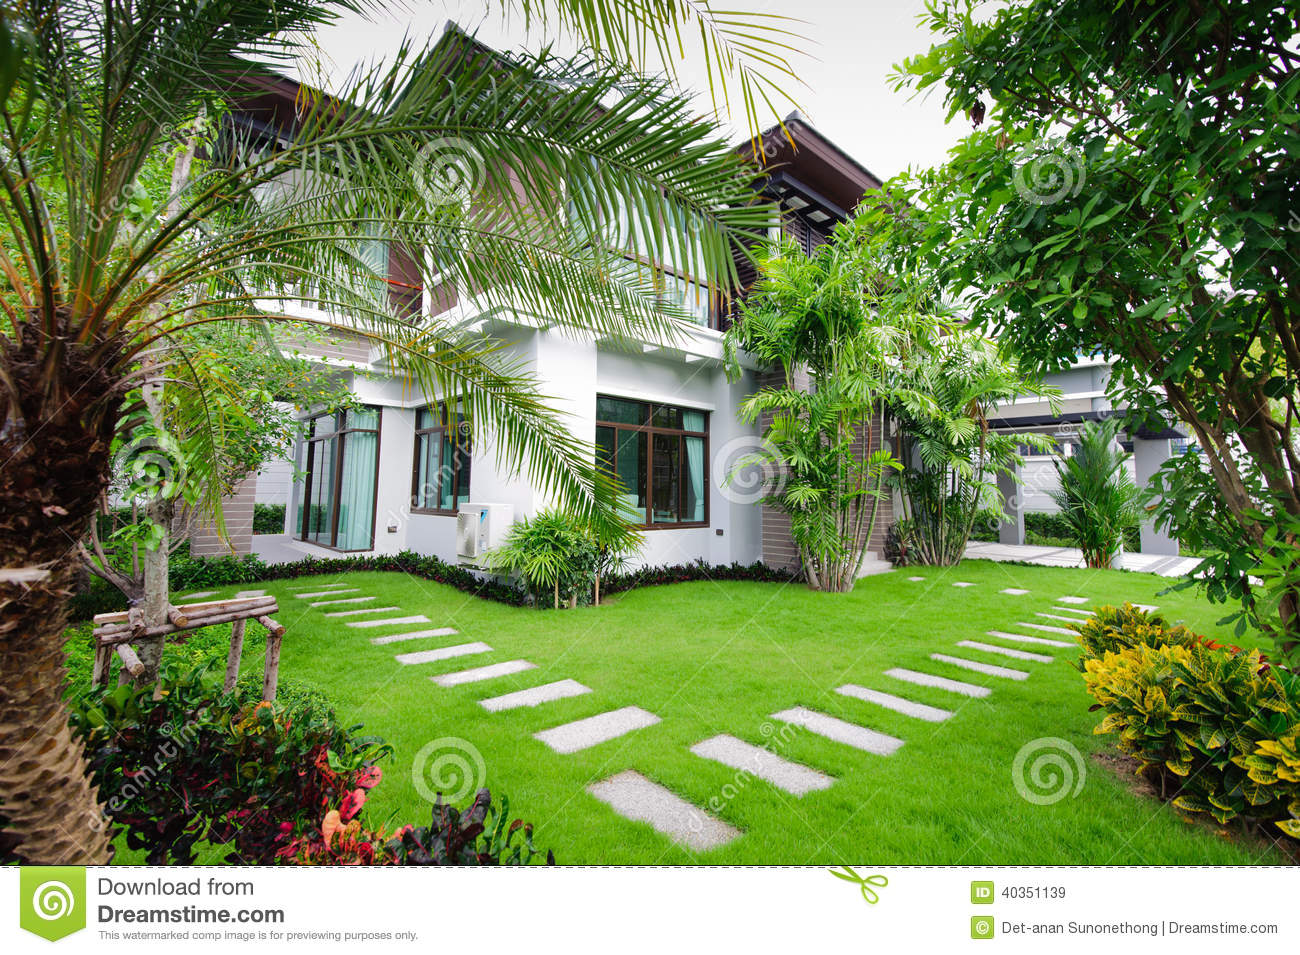 Maison moderne dans le jardin image stock image 40351139 for Jardin moderne photo